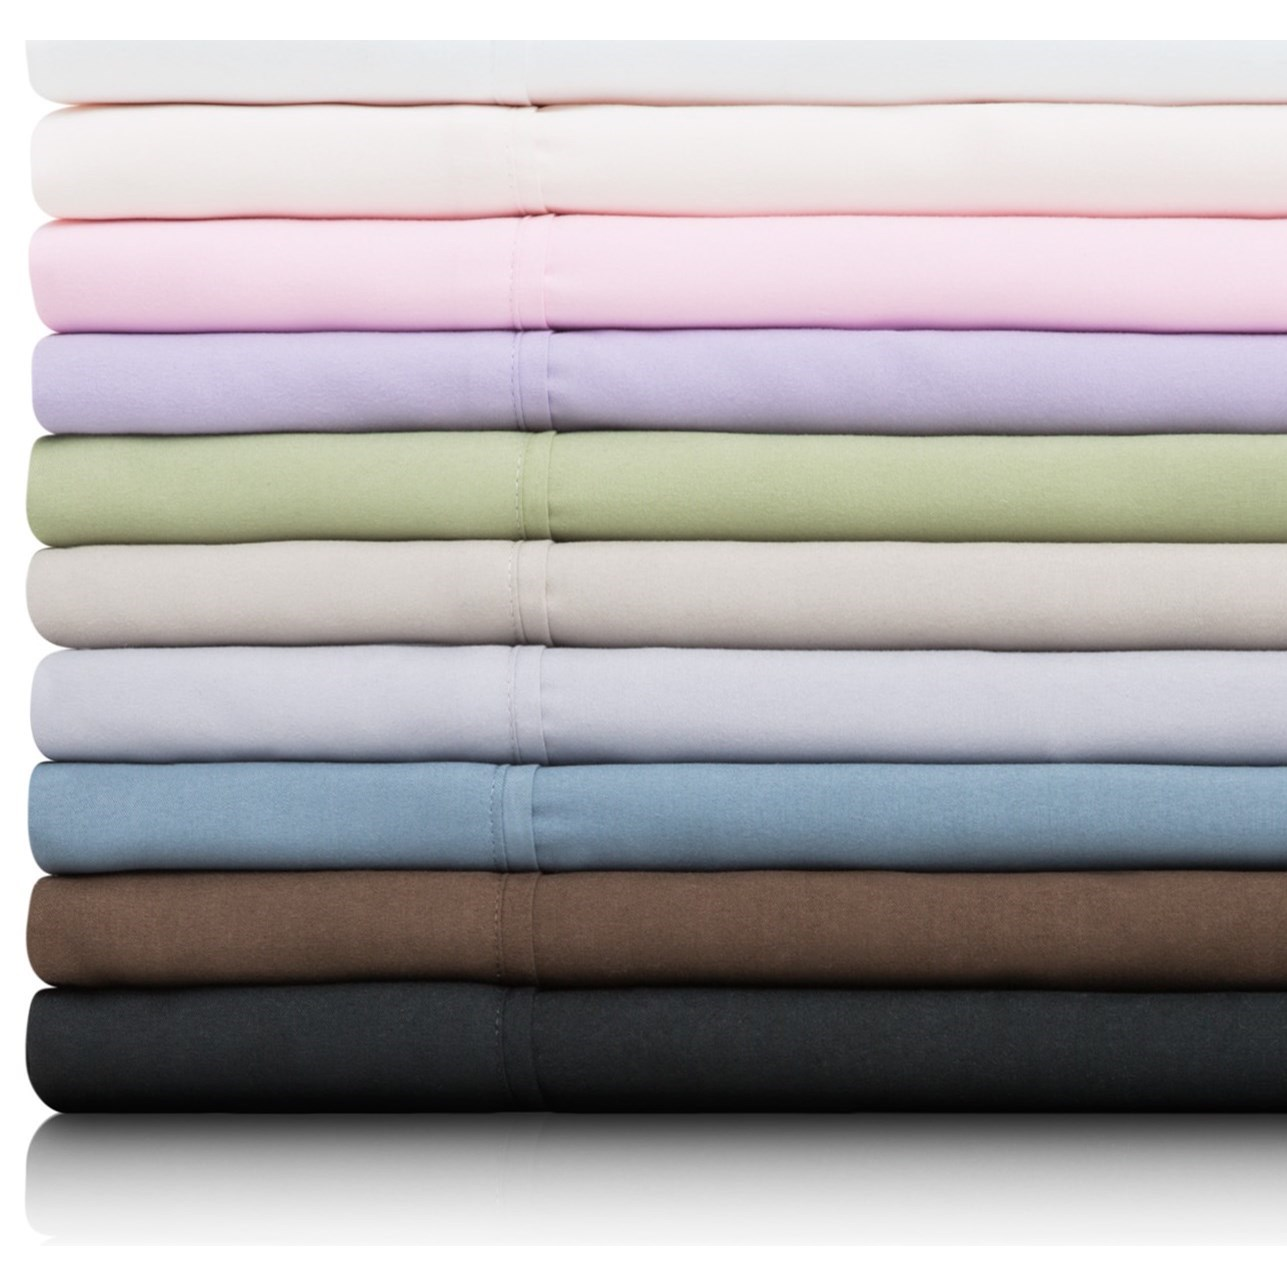 Malouf Brushed Microfiber Cot Woven™ Brushed Microfiber Cot Sheet Set - Item Number: MA90CTPAMS